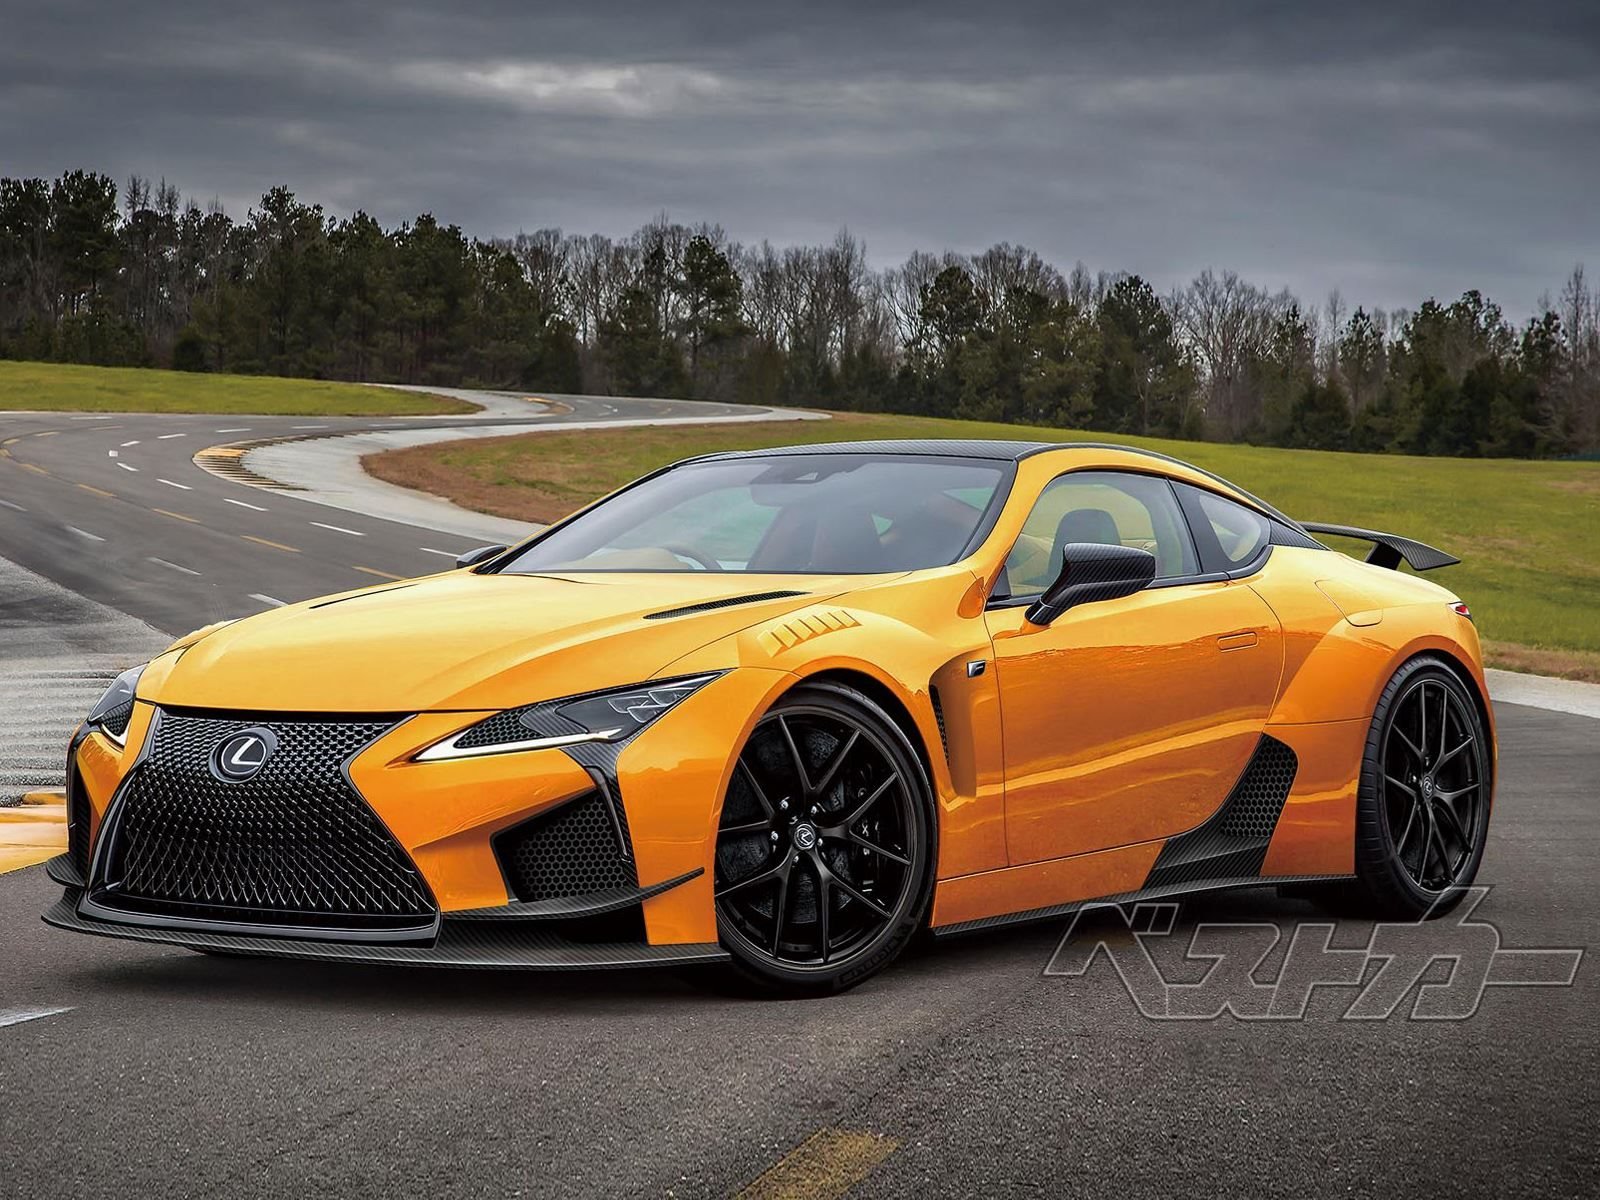 600-HP Lexus LC F Won't Join The Party Until 2022? - CarBuzz